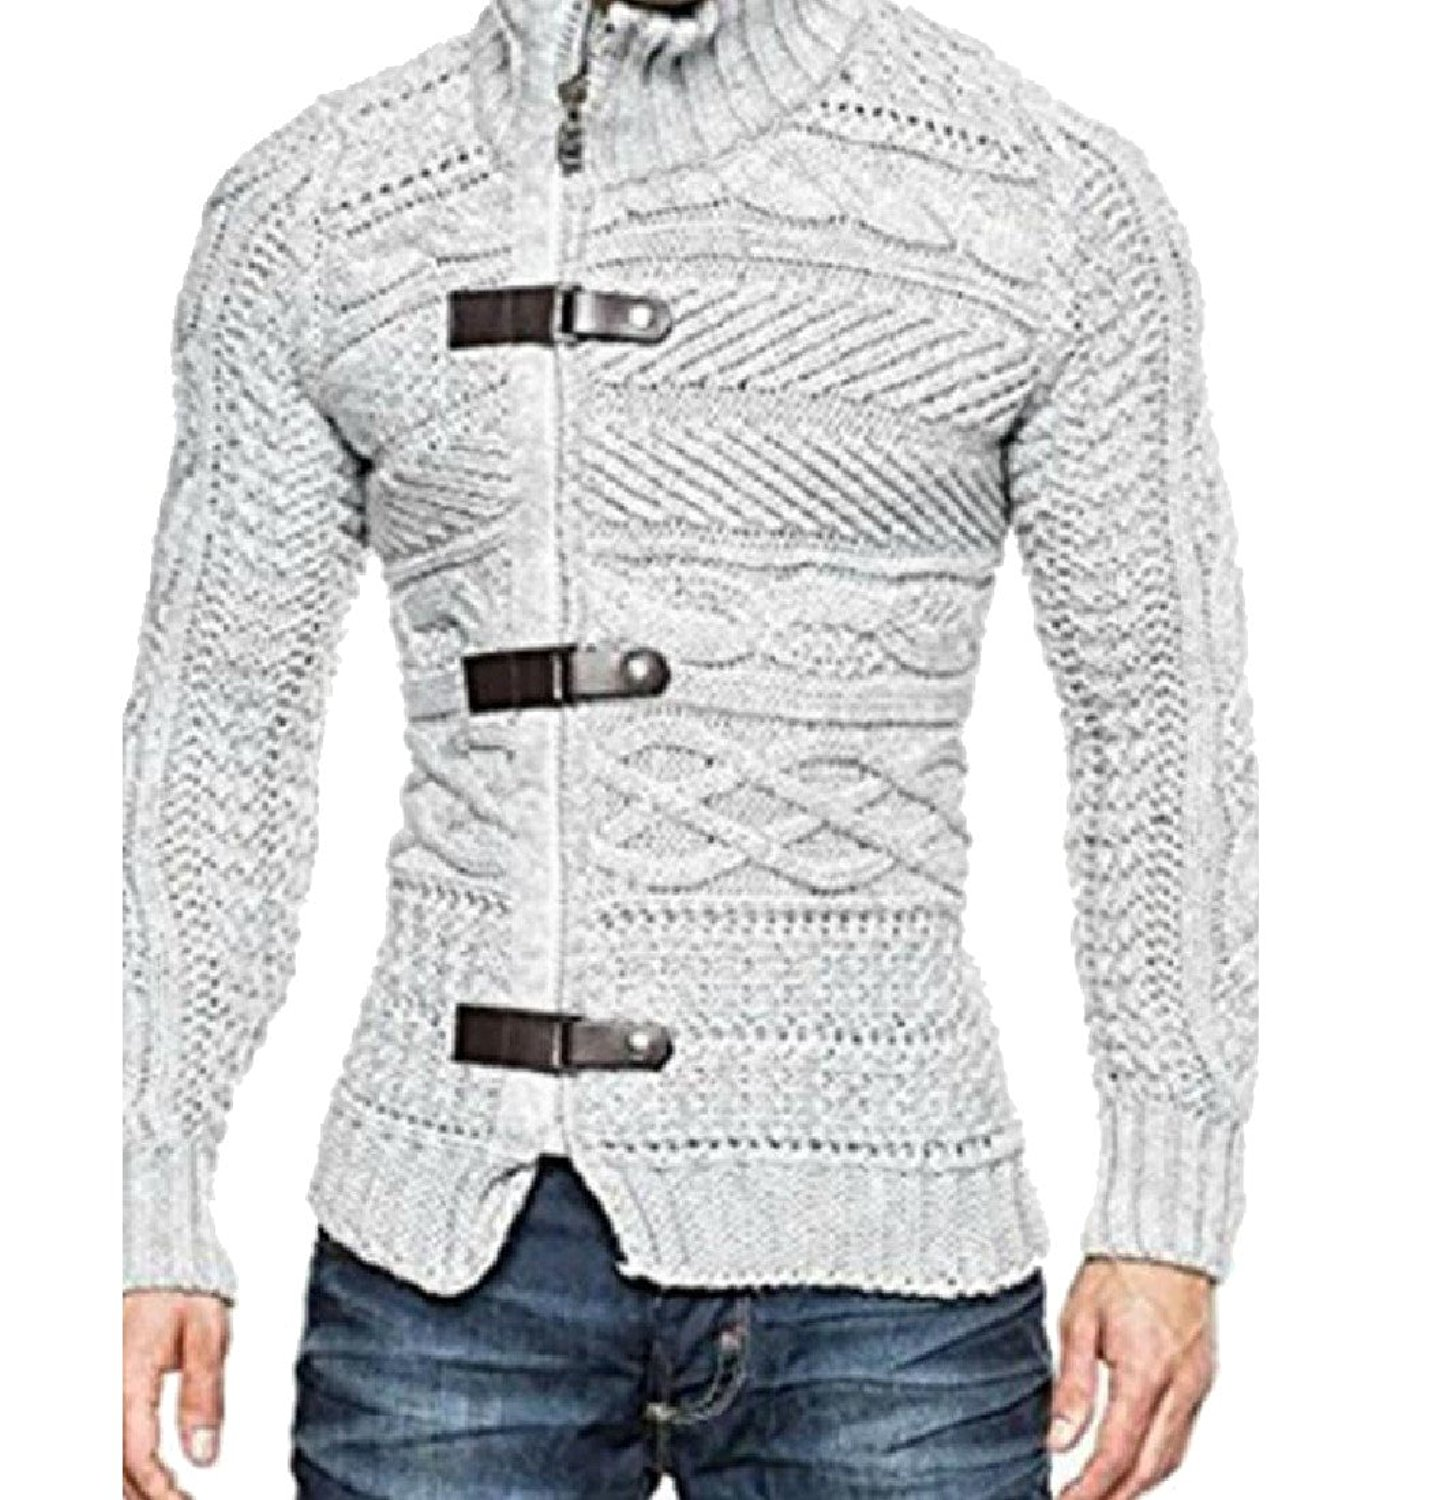 Coolred-Men Fashion Wild Solid Hi-Neck Plus Size Cardigan Sweater Tops